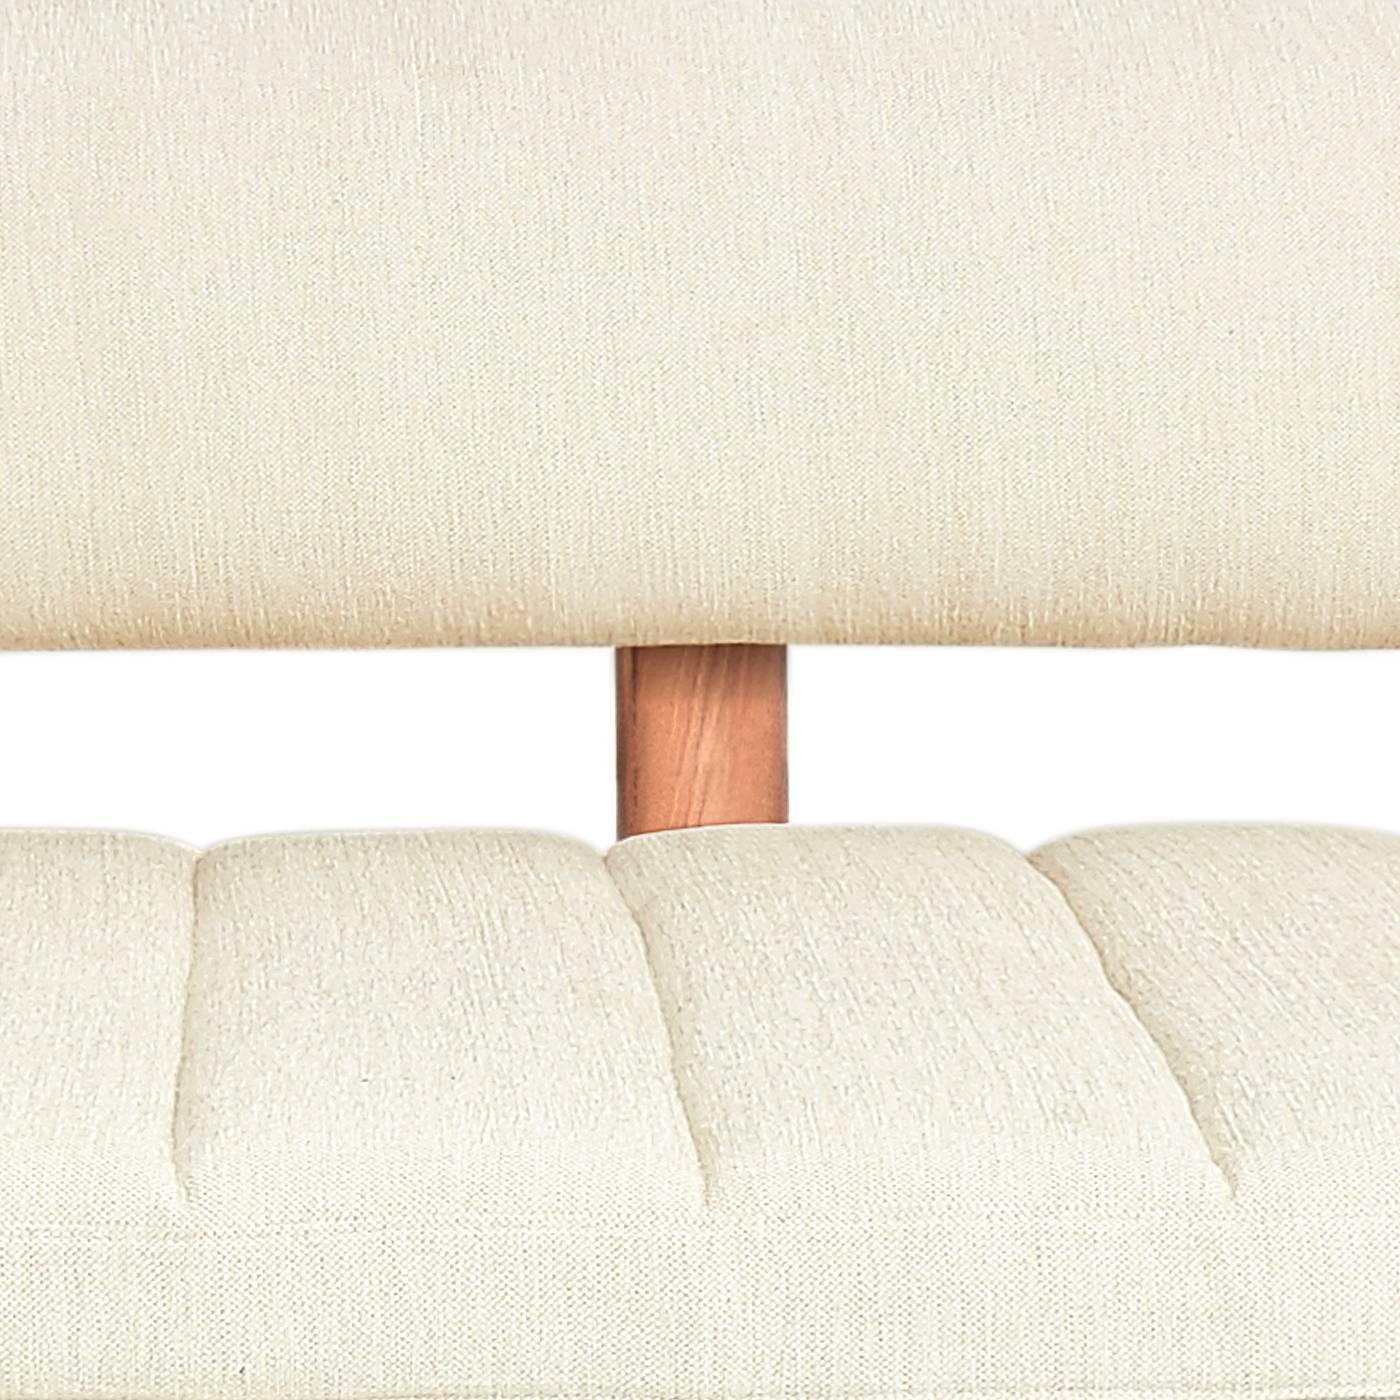 Aspen Angled Sofa For Sale At 1stdibs